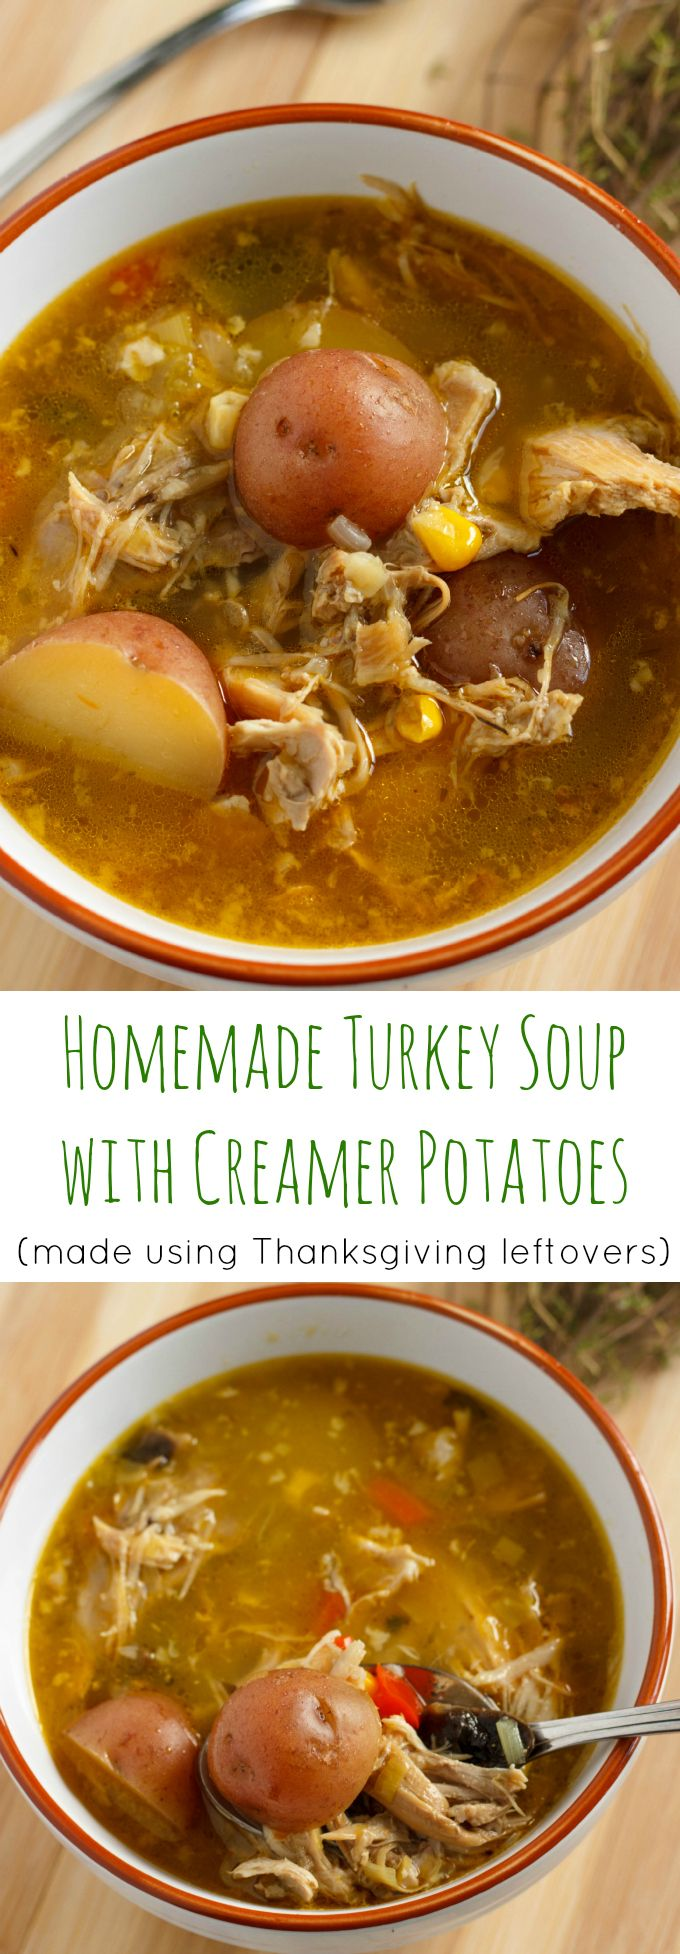 Homemade Turkey Soup with Creamer Potatoes (includes instructions for homemade turkey broth.)